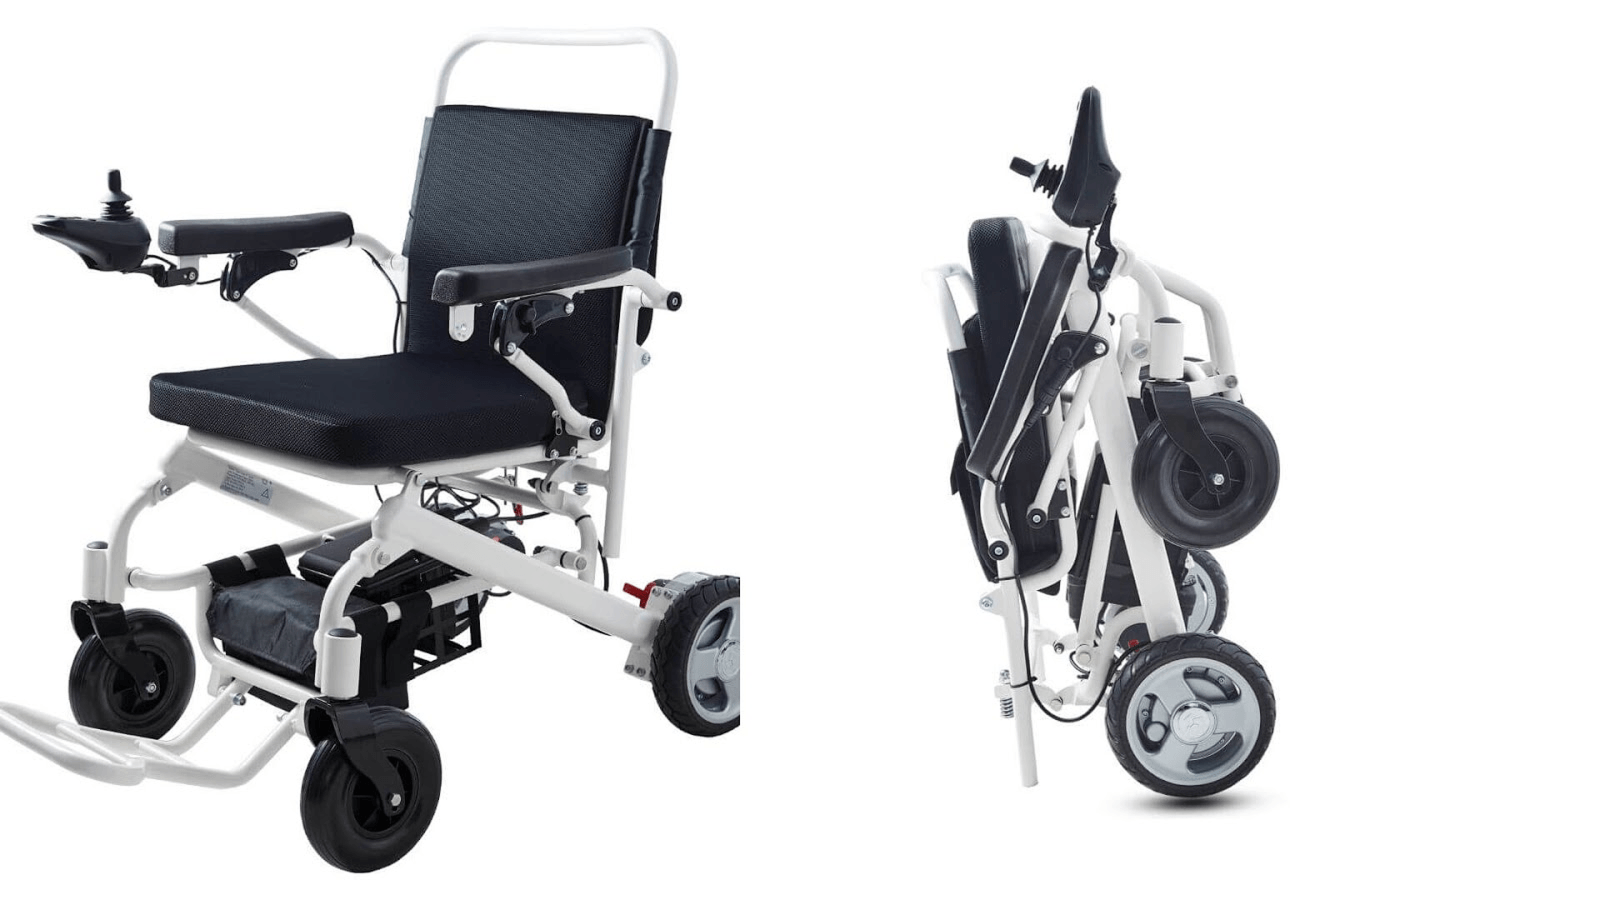 Picture of a Foicare folding electric wheelchair